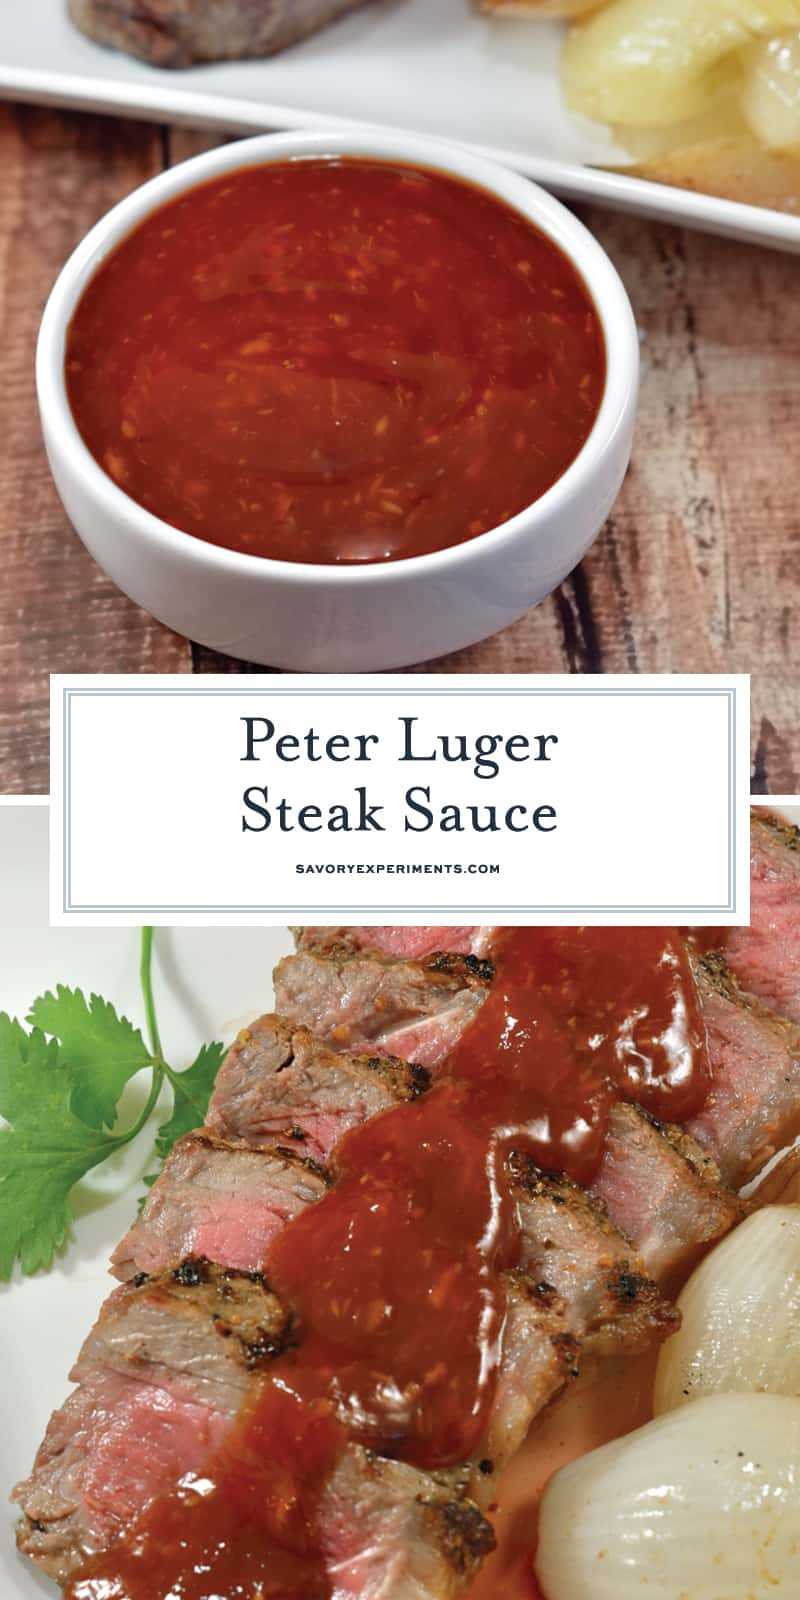 The best homemade steak sauce is my Copycat Peter Luger Steak Sauce! Sweet and spicy, rich and decadent, it complements even the best piece of meat and even chicken! #homemadesteaksauce #steaksauce www.savoryexperiments.com